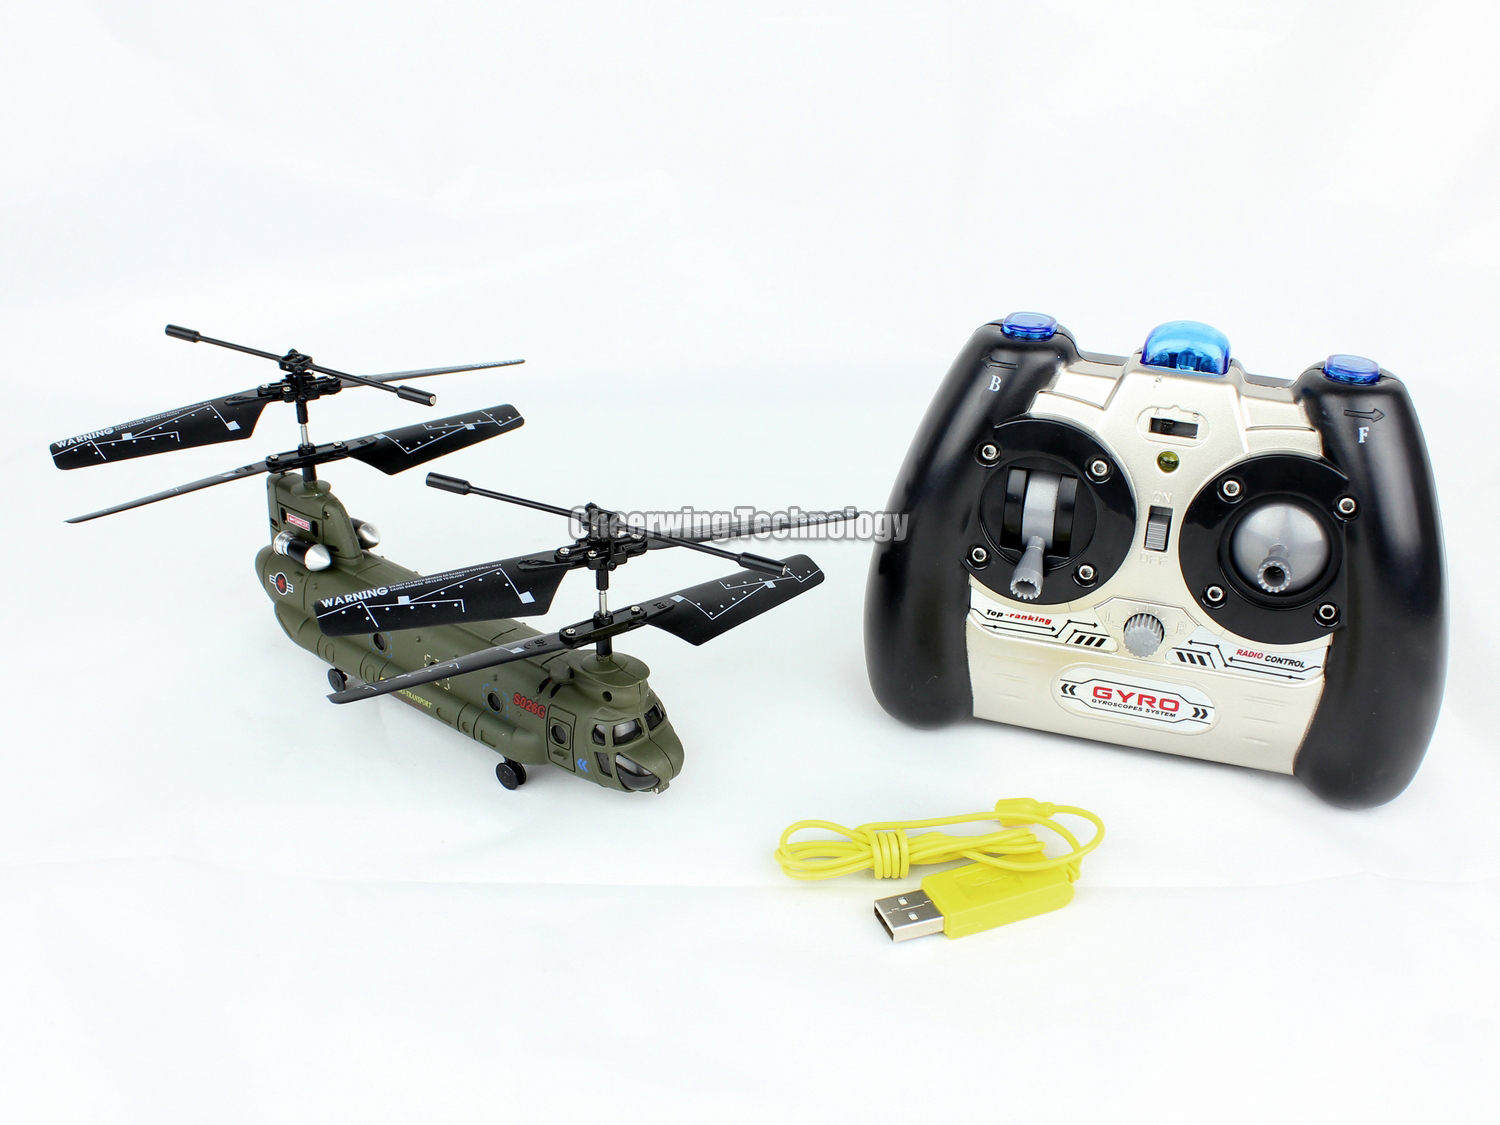 Details about Syma S026G 3-Channel 3.5CH Mini Chinook RC Helicopter W